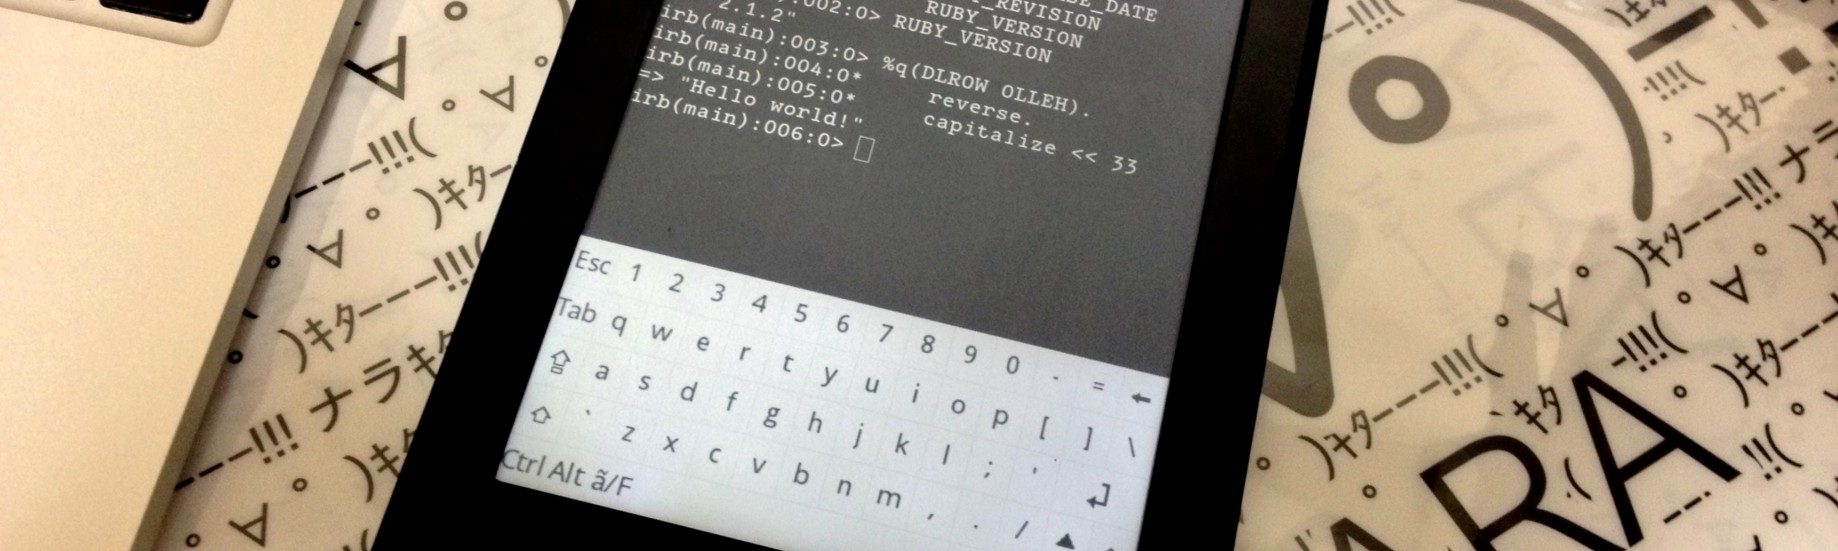 Ruby Everywhere: Ruby on Kindle Paperwhite - Code, Applied